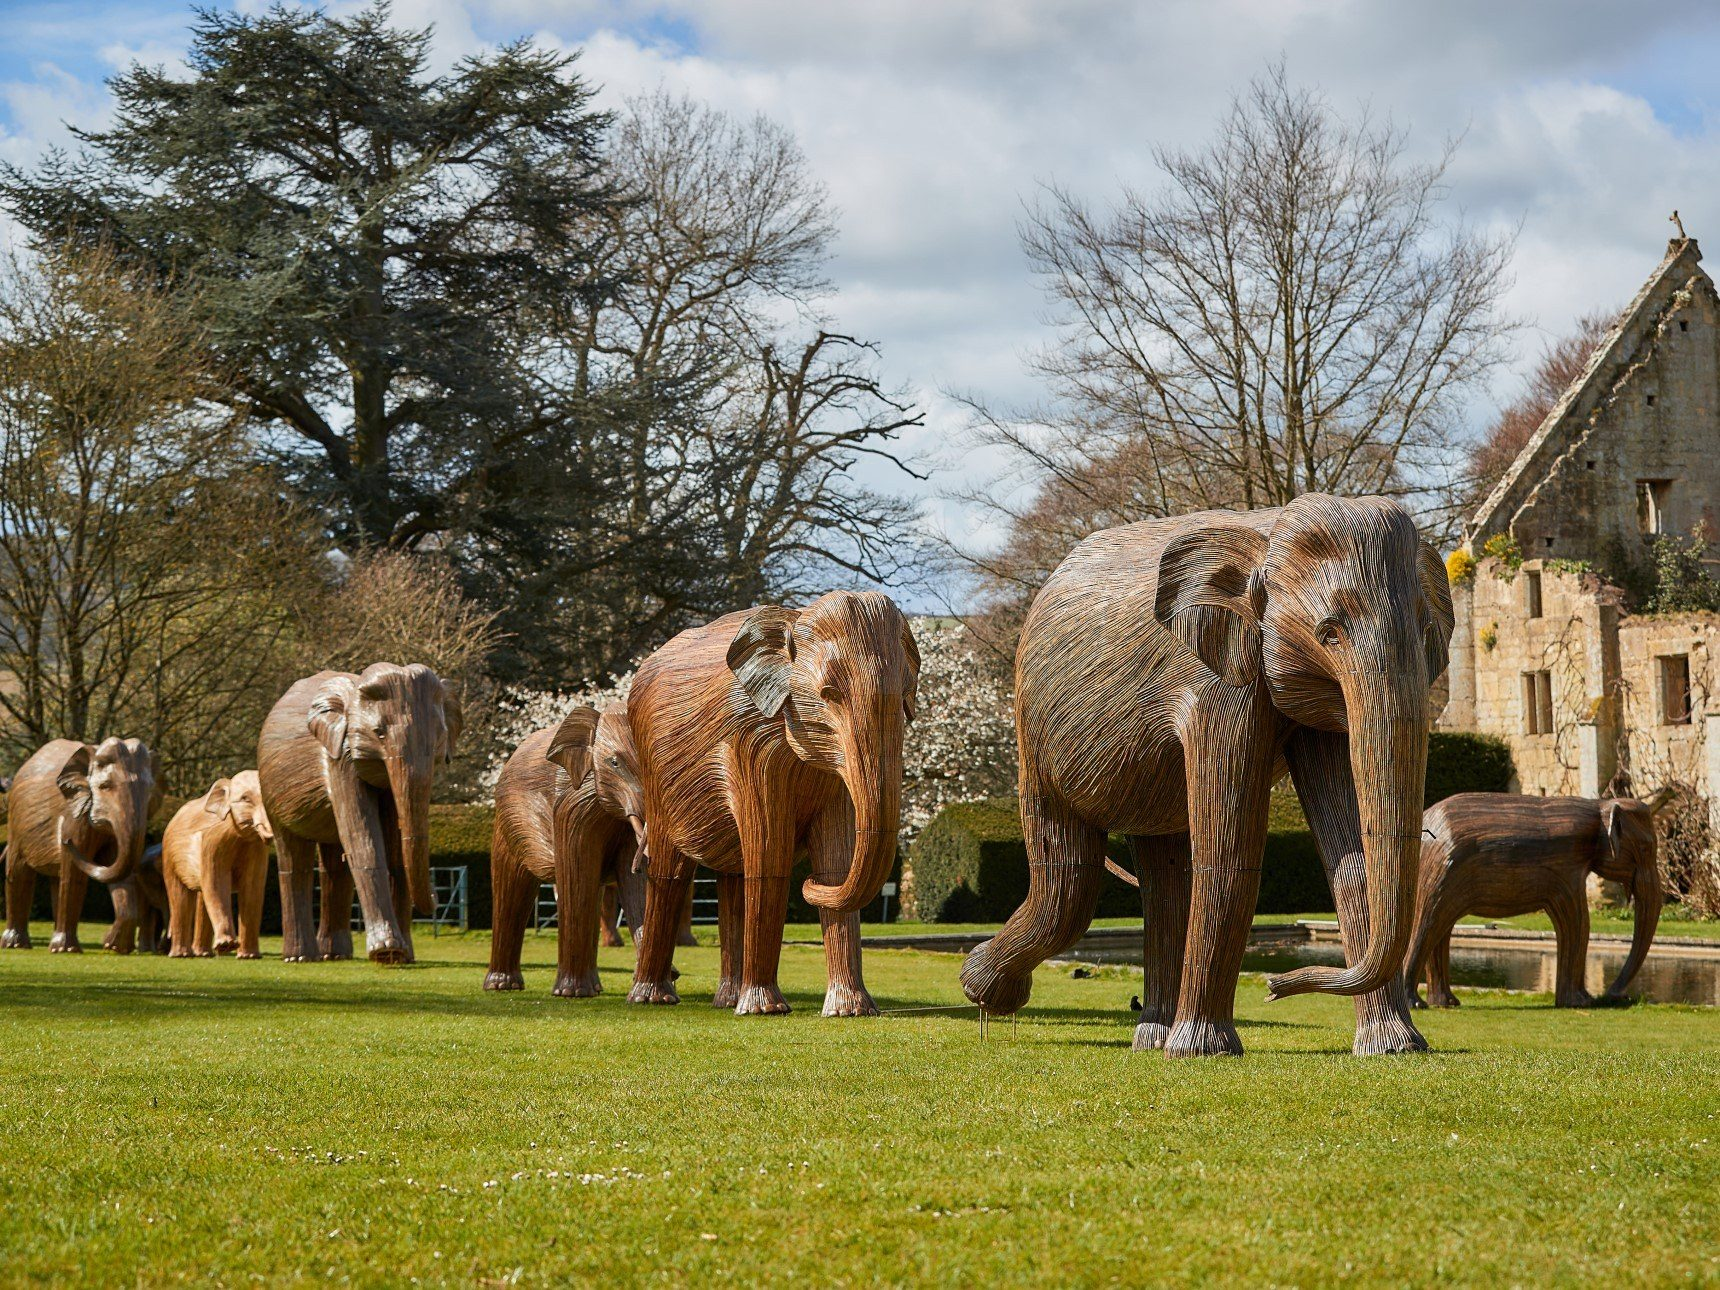 Herd of Elephant Sculptures in position walking across castle lawn